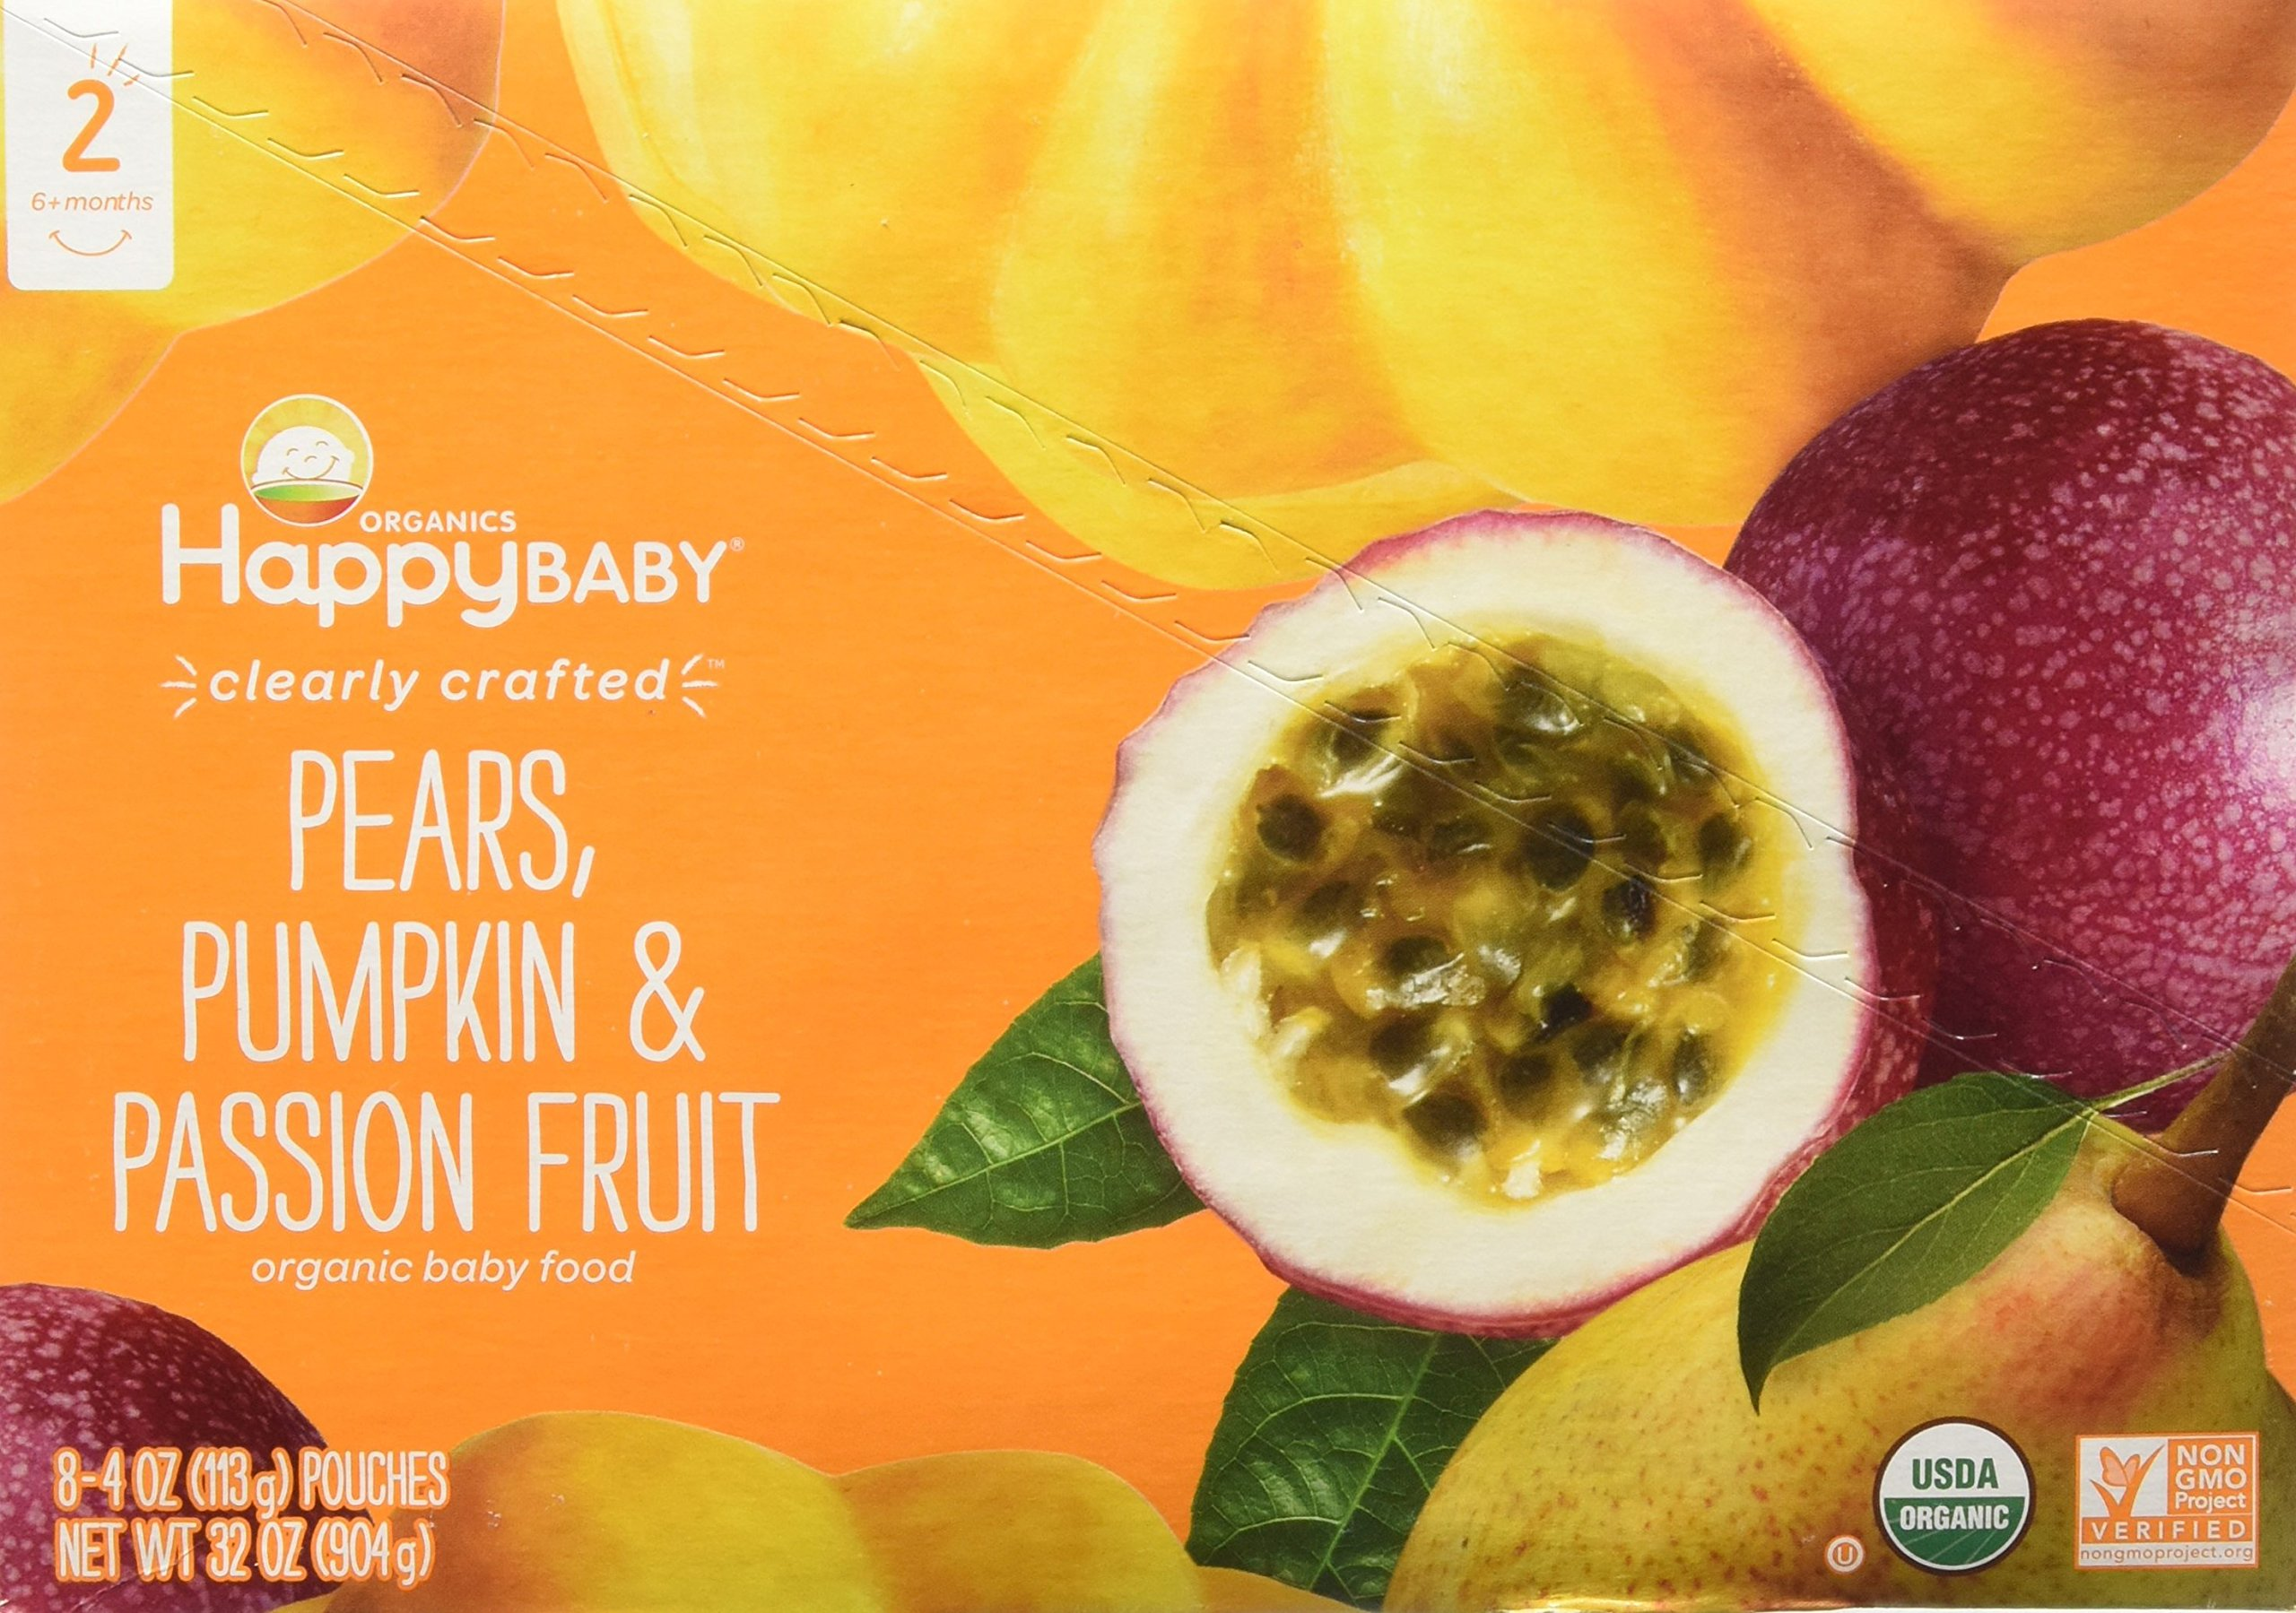 Happy Baby Stage 2 - Pears, Pumpkin & Passion Fruit - 4 oz, 8 ct by Happy Baby (Image #1)